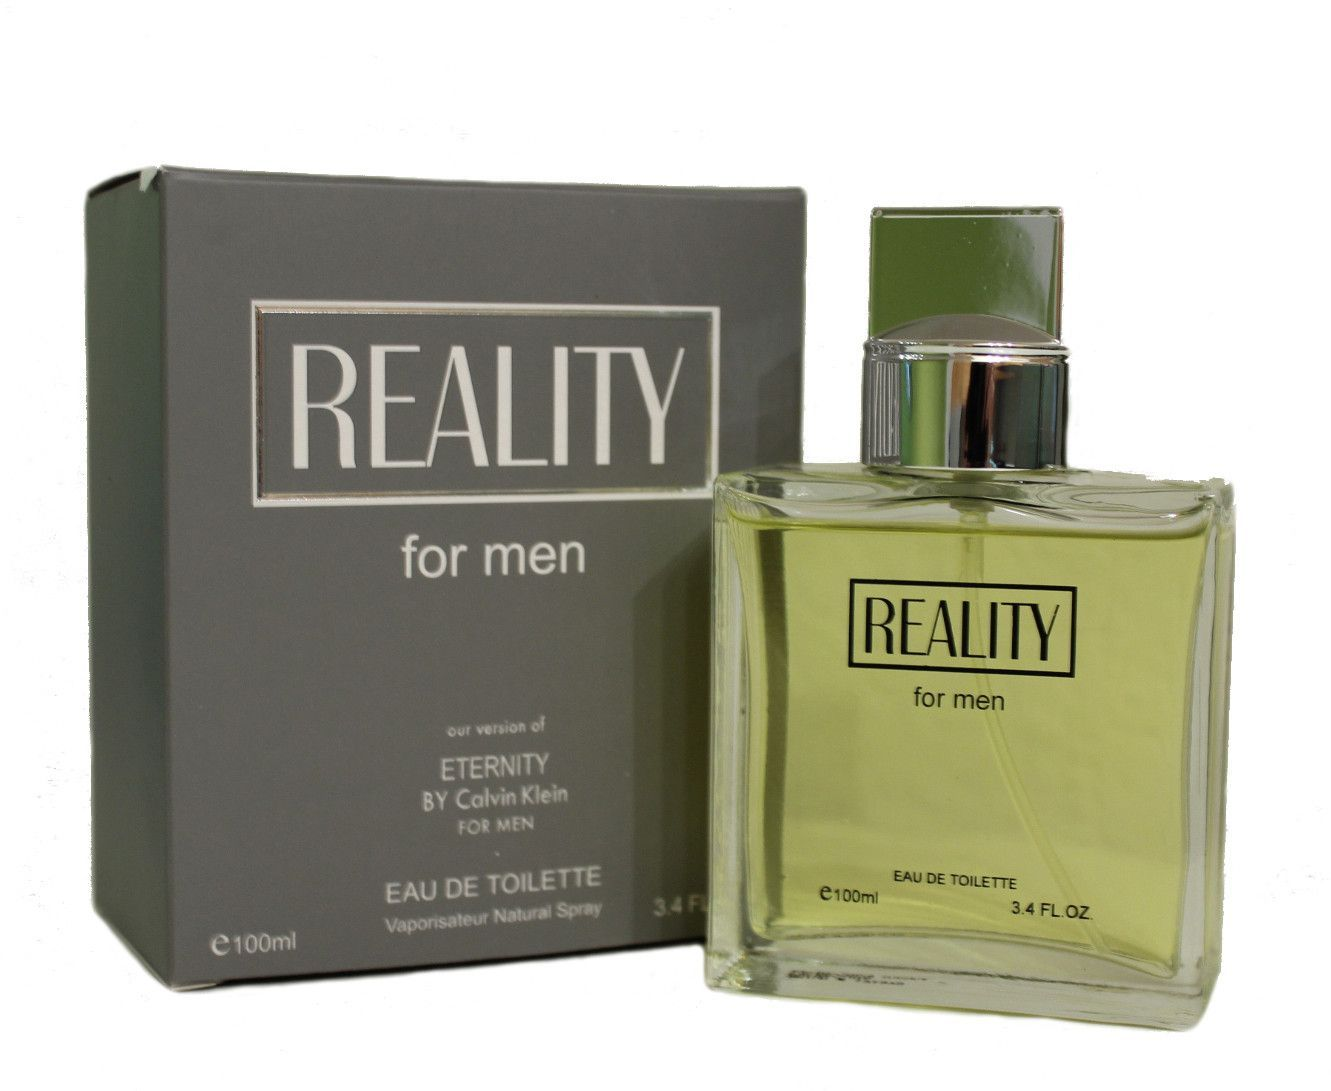 Reality Perfume for Men- Our version of Eternity by Calvin Klein